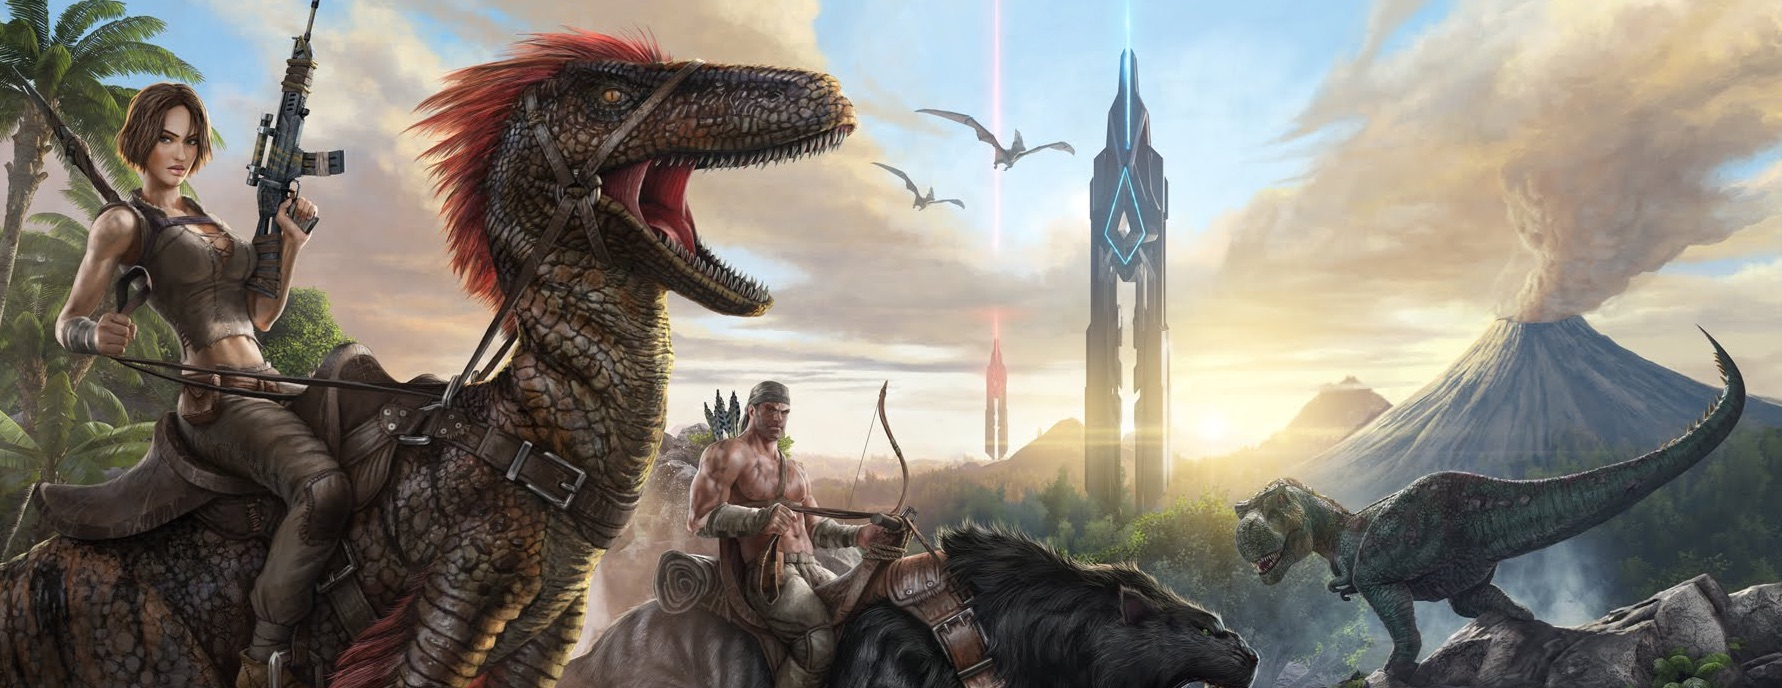 ARK Leveling Guide - Survive ARK